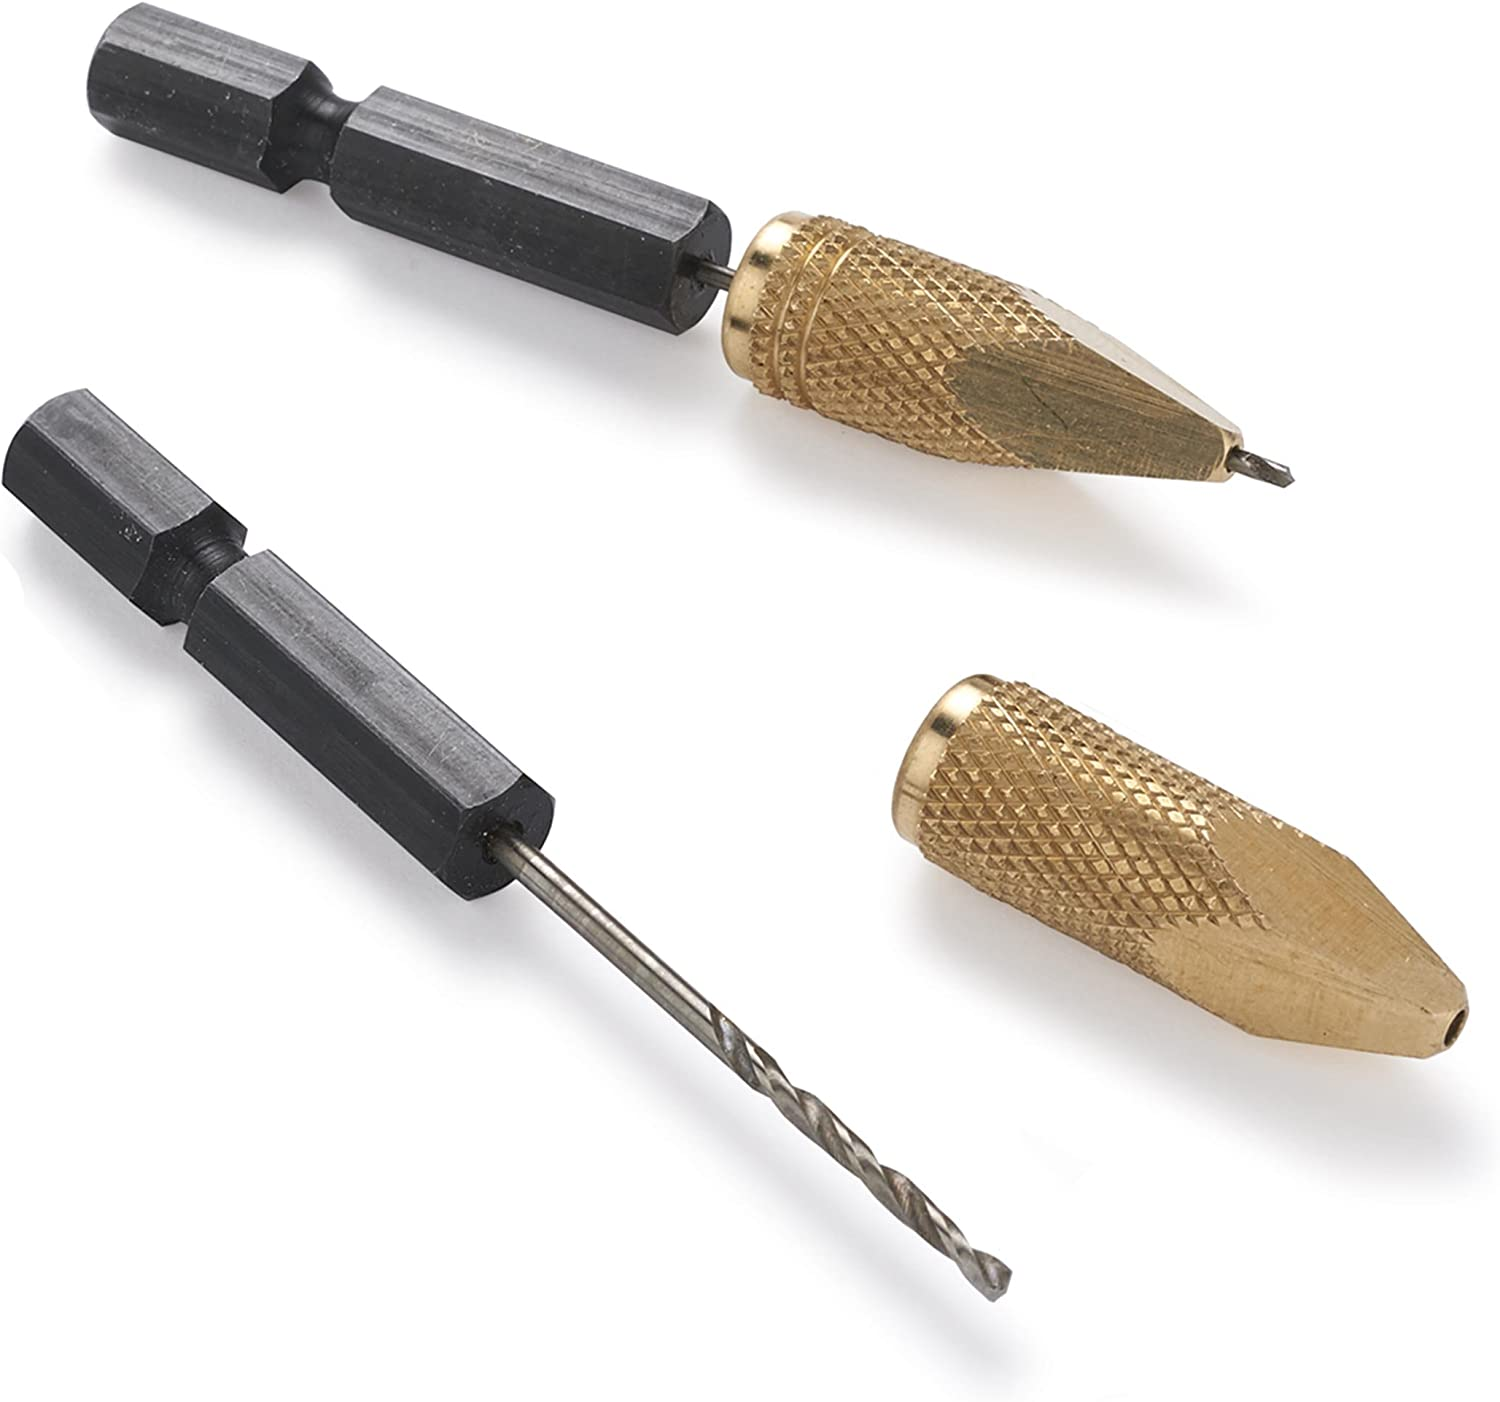 2.5 Overall Length 0.046//0.048 Groove Width Solid Carbide Micro 100 RR-046-16 Right Hand Retaining Ring Grooving Tool 1.000 Maximum Bore Depth 0.375 Minimum Bore Diameter 0.100 Projection 0.375 Shank Diameter